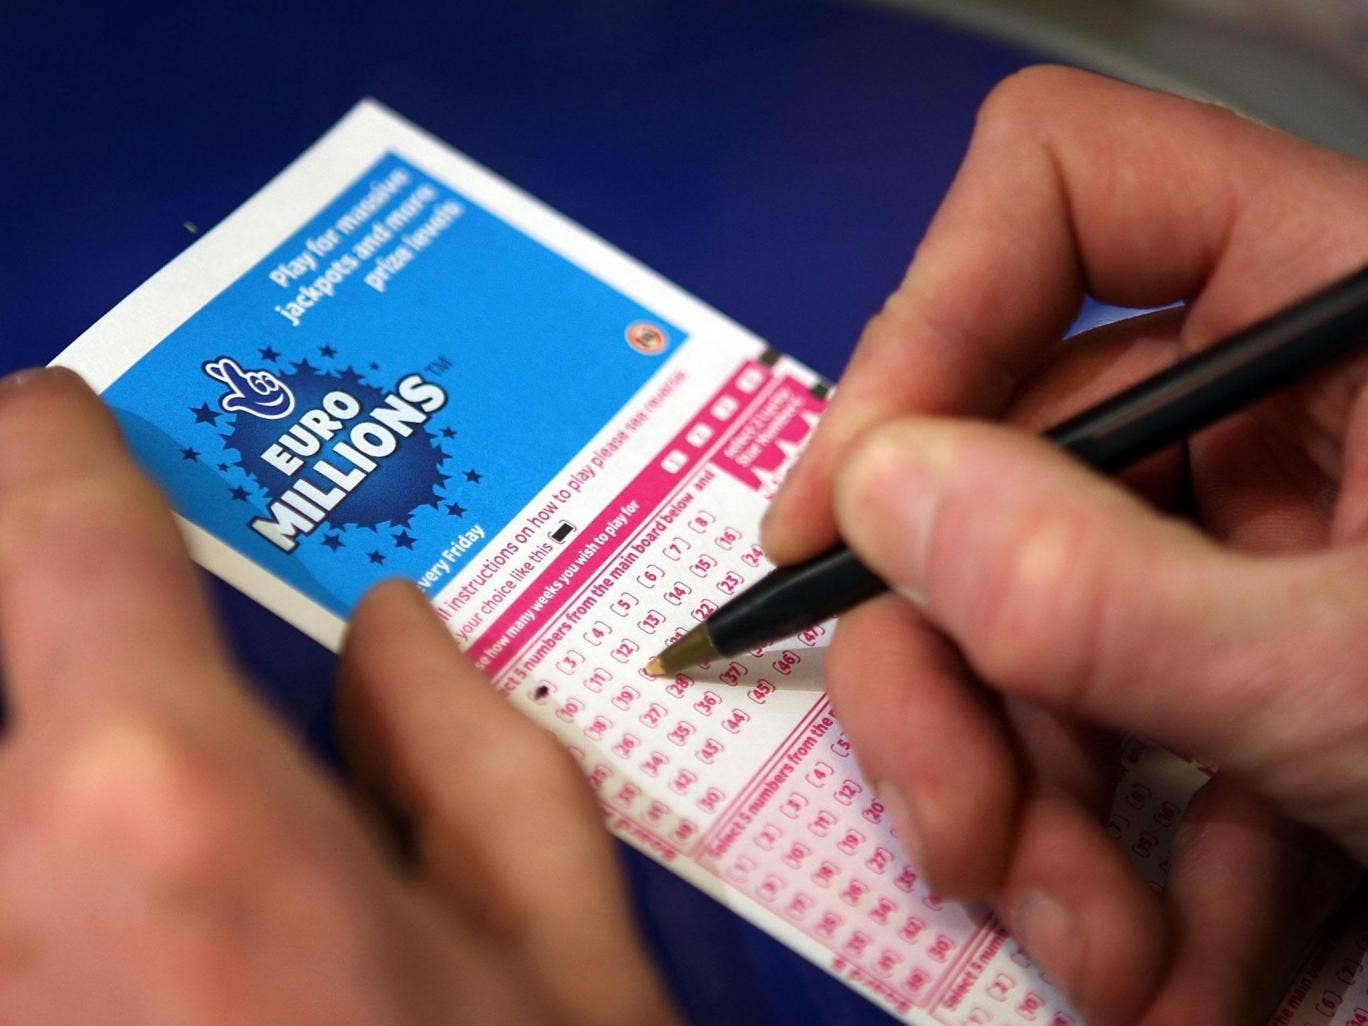 The lucky winner has until 11pm on Wednesday to cash in the ticket which was bought in the Stevenage and Hitchin area of Hertfordshire for the EuroMillions draw on Friday June 8.